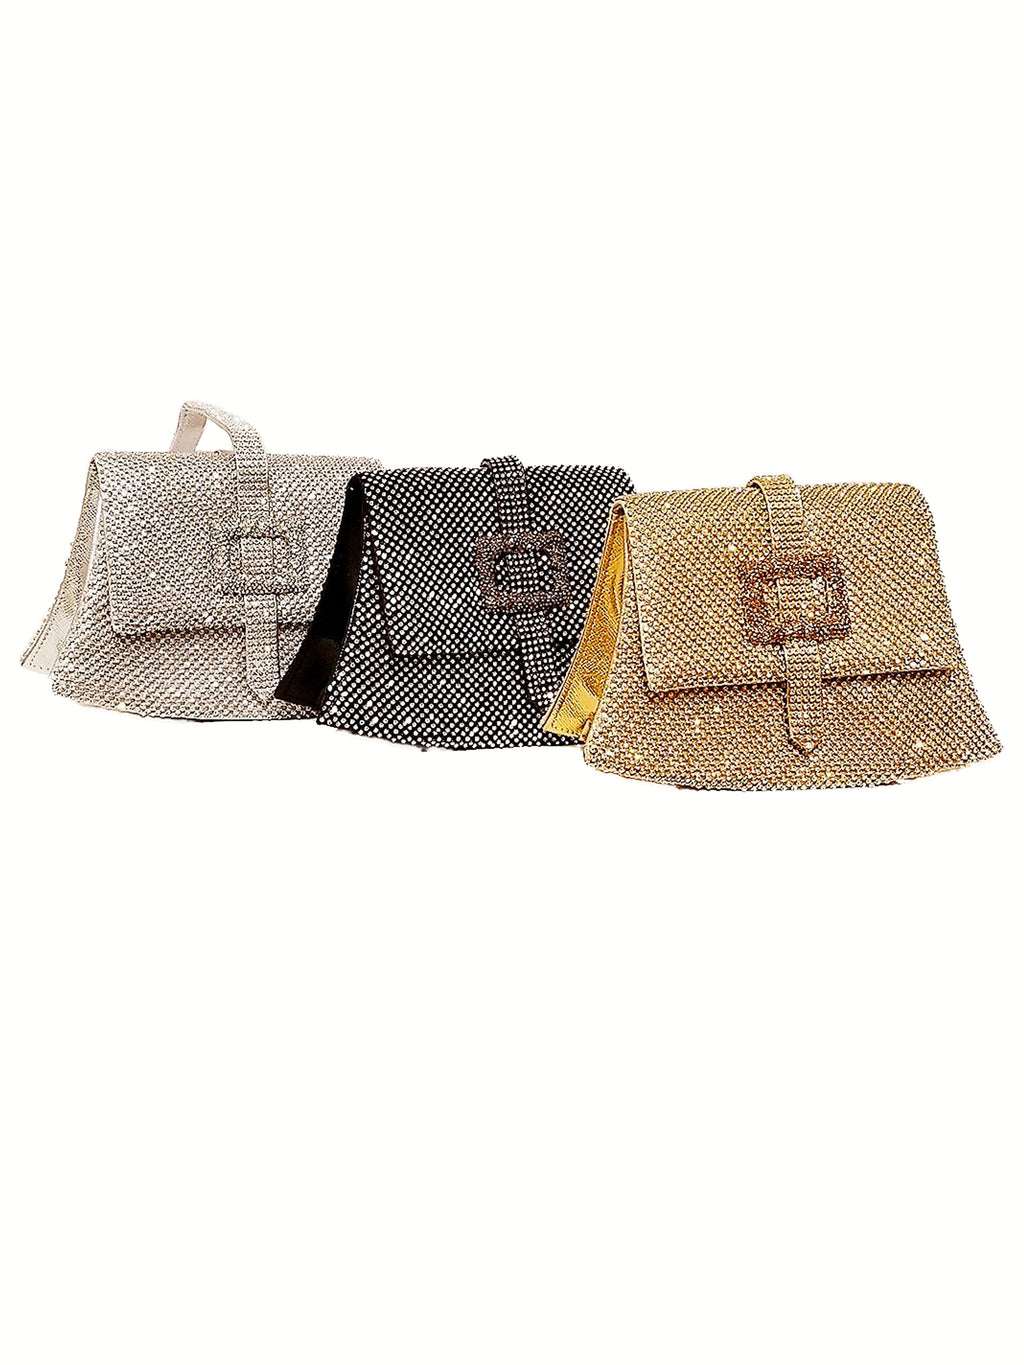 Rhinestone Clutch W/ Buckle